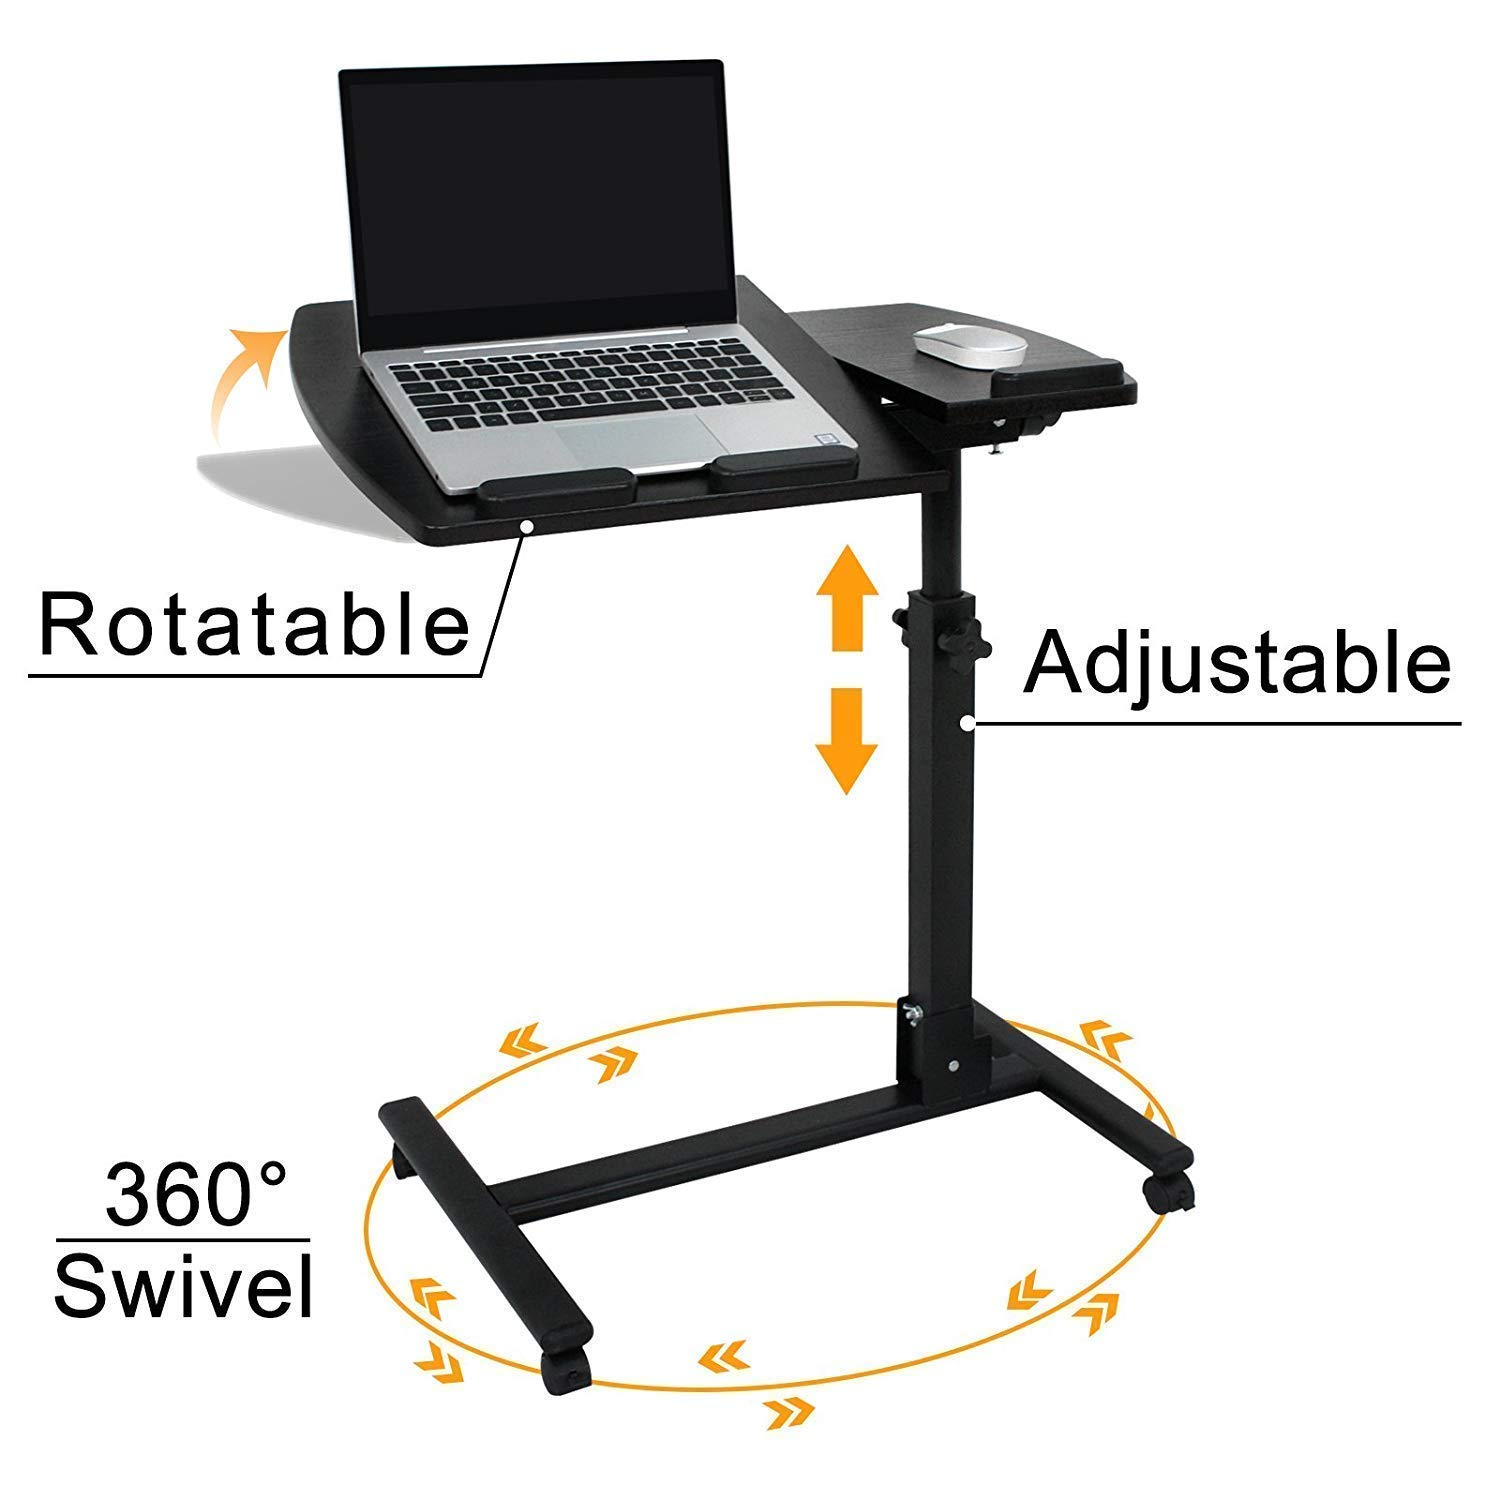 HomGarden Portable Height Adjustable 360° Swivel Laptop Notebook Desk Table Stand Holder Home Office PC Computer Mobile Laptop w/Wheels, Black